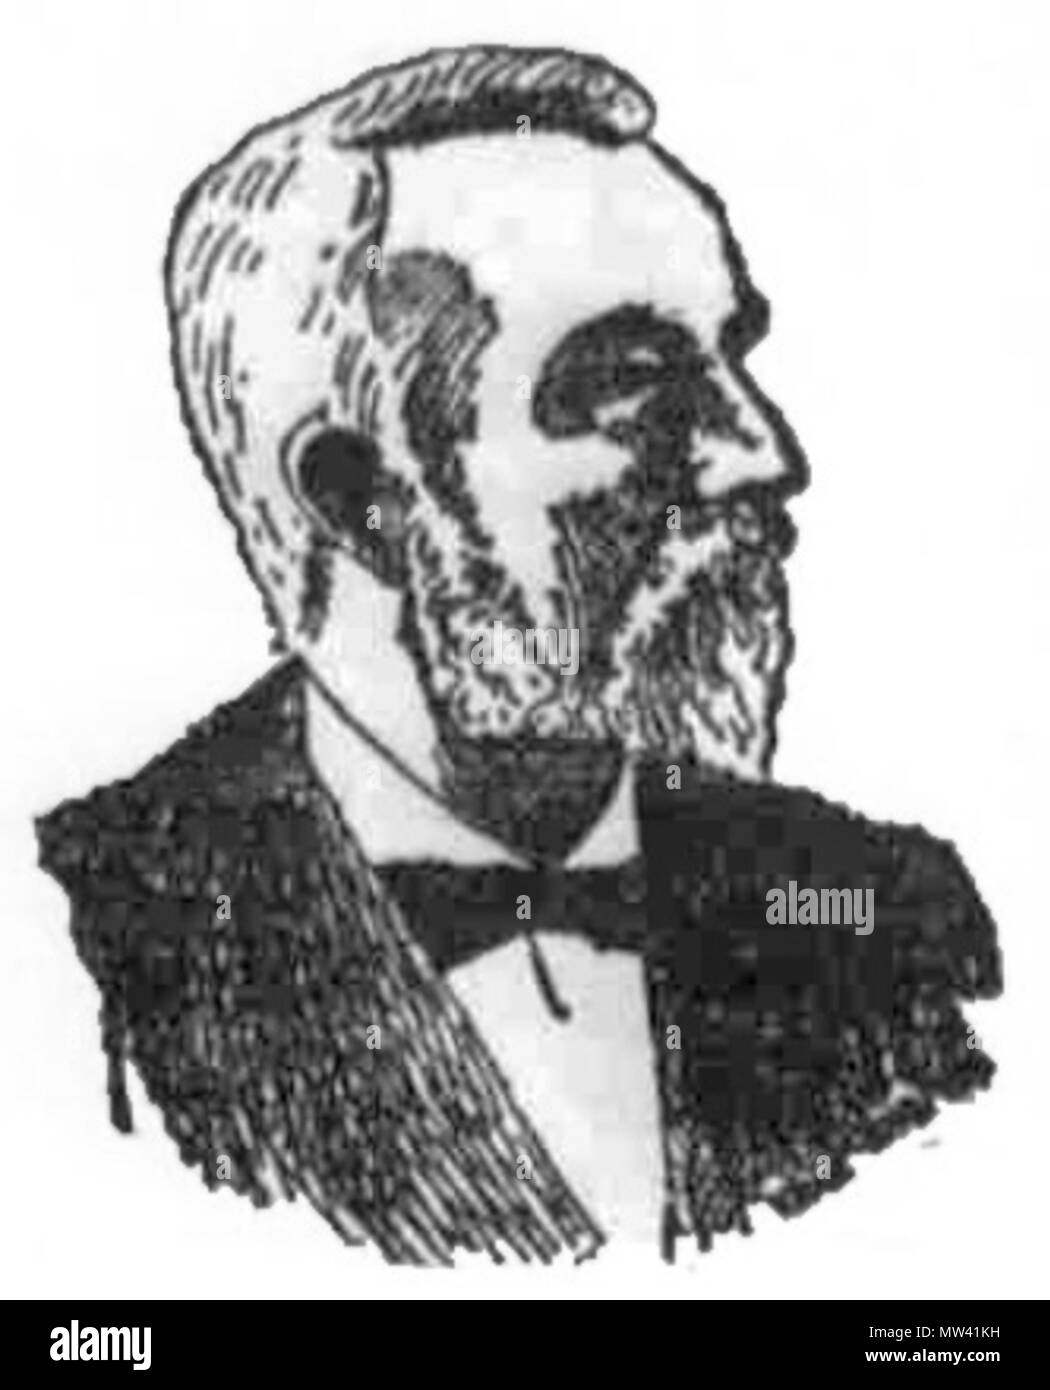 . English: John Mott-Smith (1824–1895) was the first dentist to set up a permanant practice in the Kingdom of Hawaii, and a politician and diplomat. 1895. newspaper sketch 441 Newspaper Sketch of John Mott-Smith - Stock Image